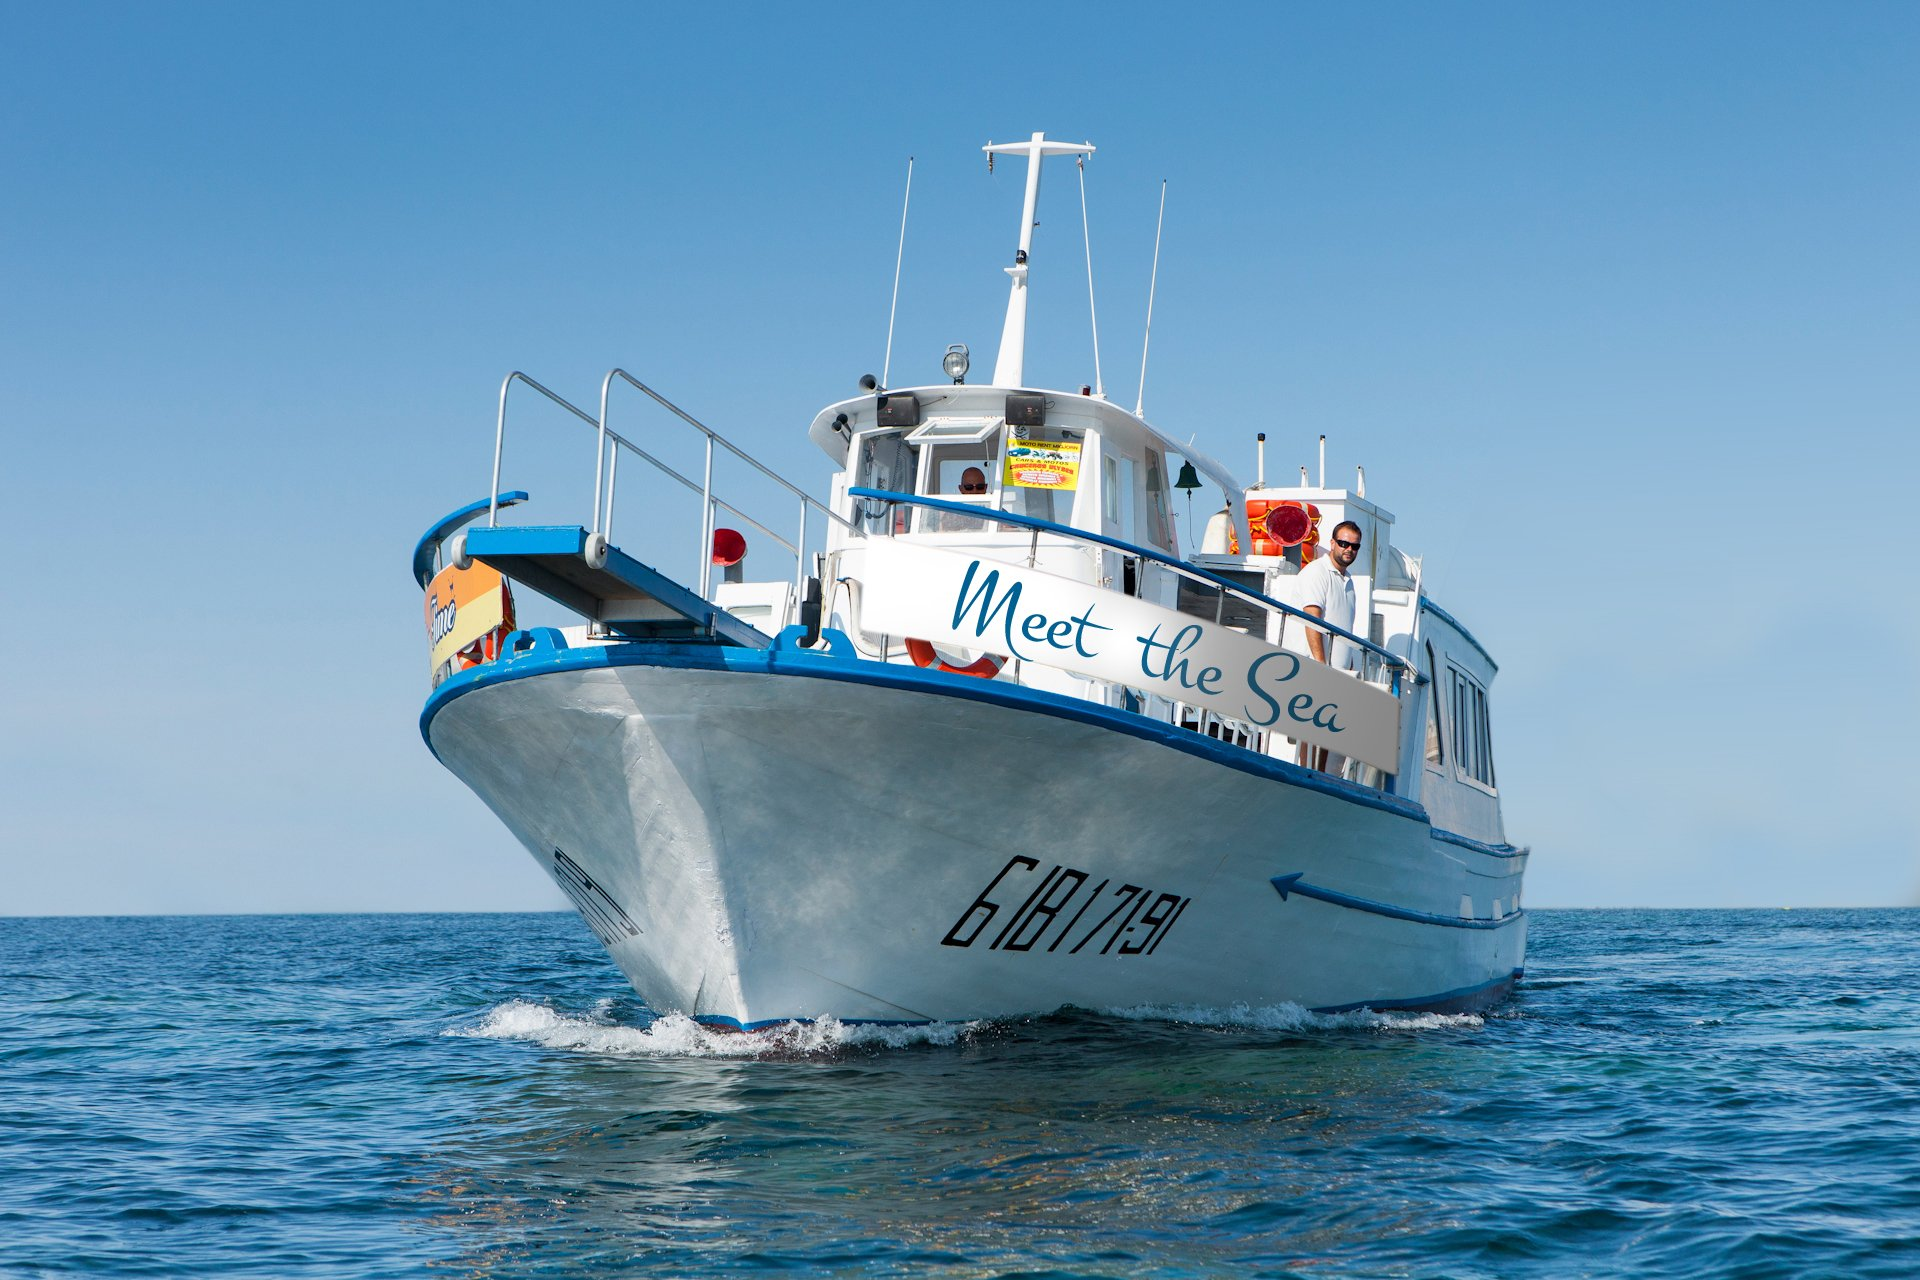 Amazing Water Activity In Our Meet The Sea - Ibiza Sailing Tour